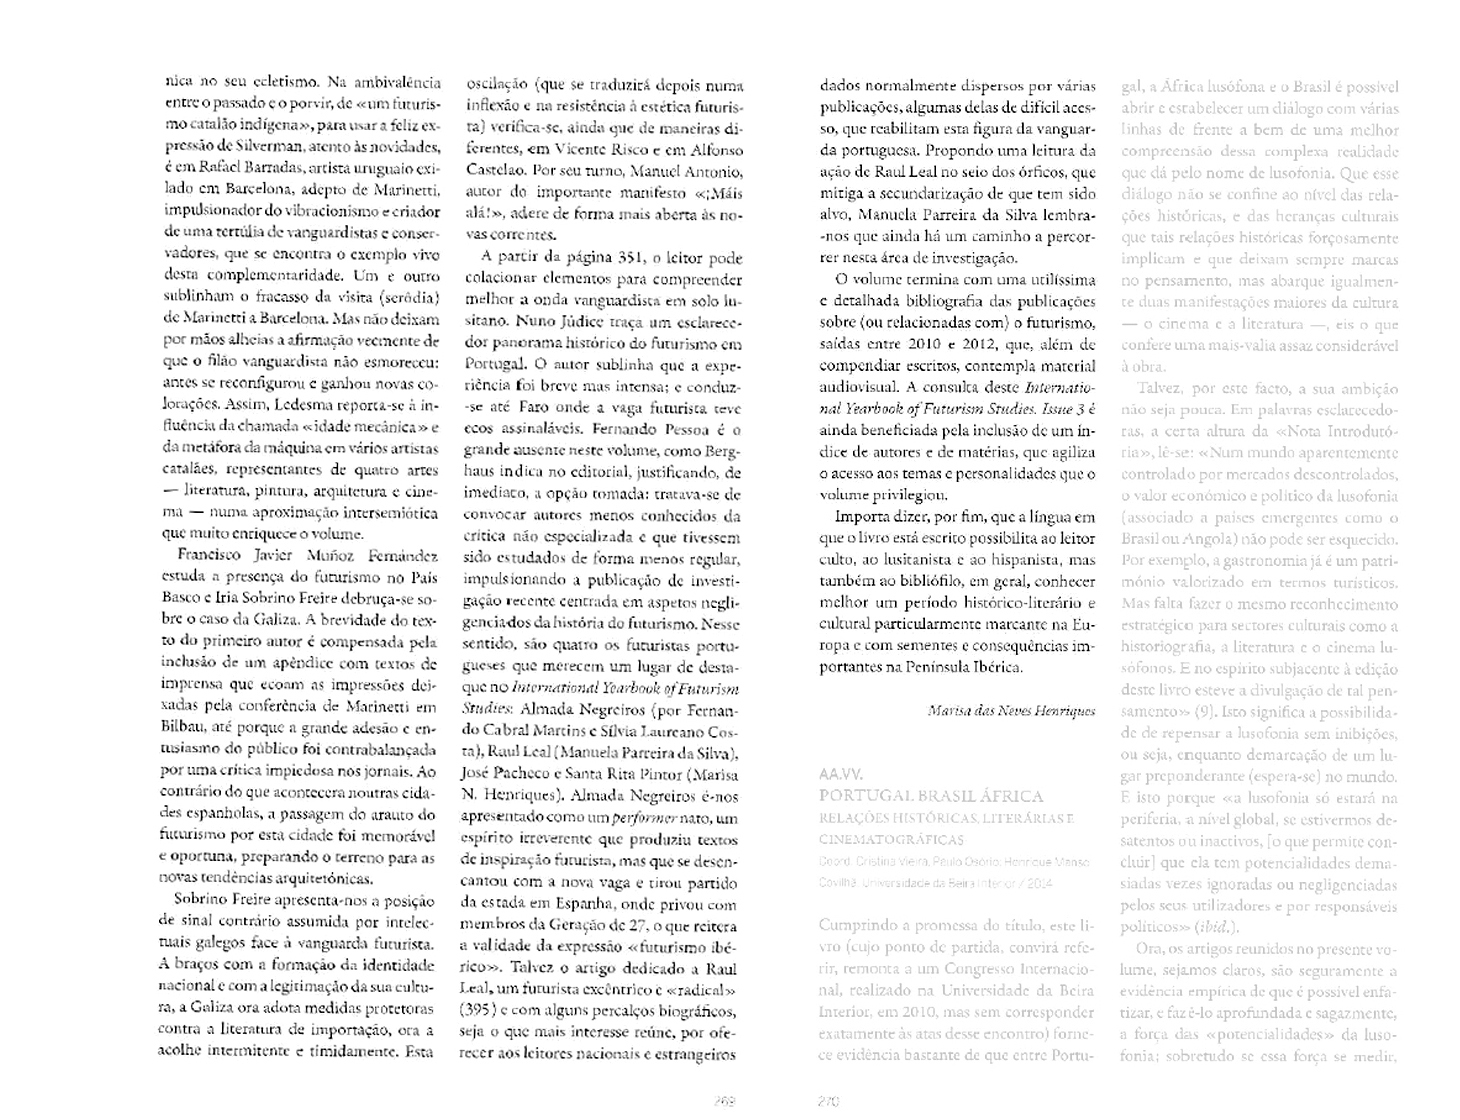 2015 Futurism_Yearbook Review Coloquio Letras 2.jpg